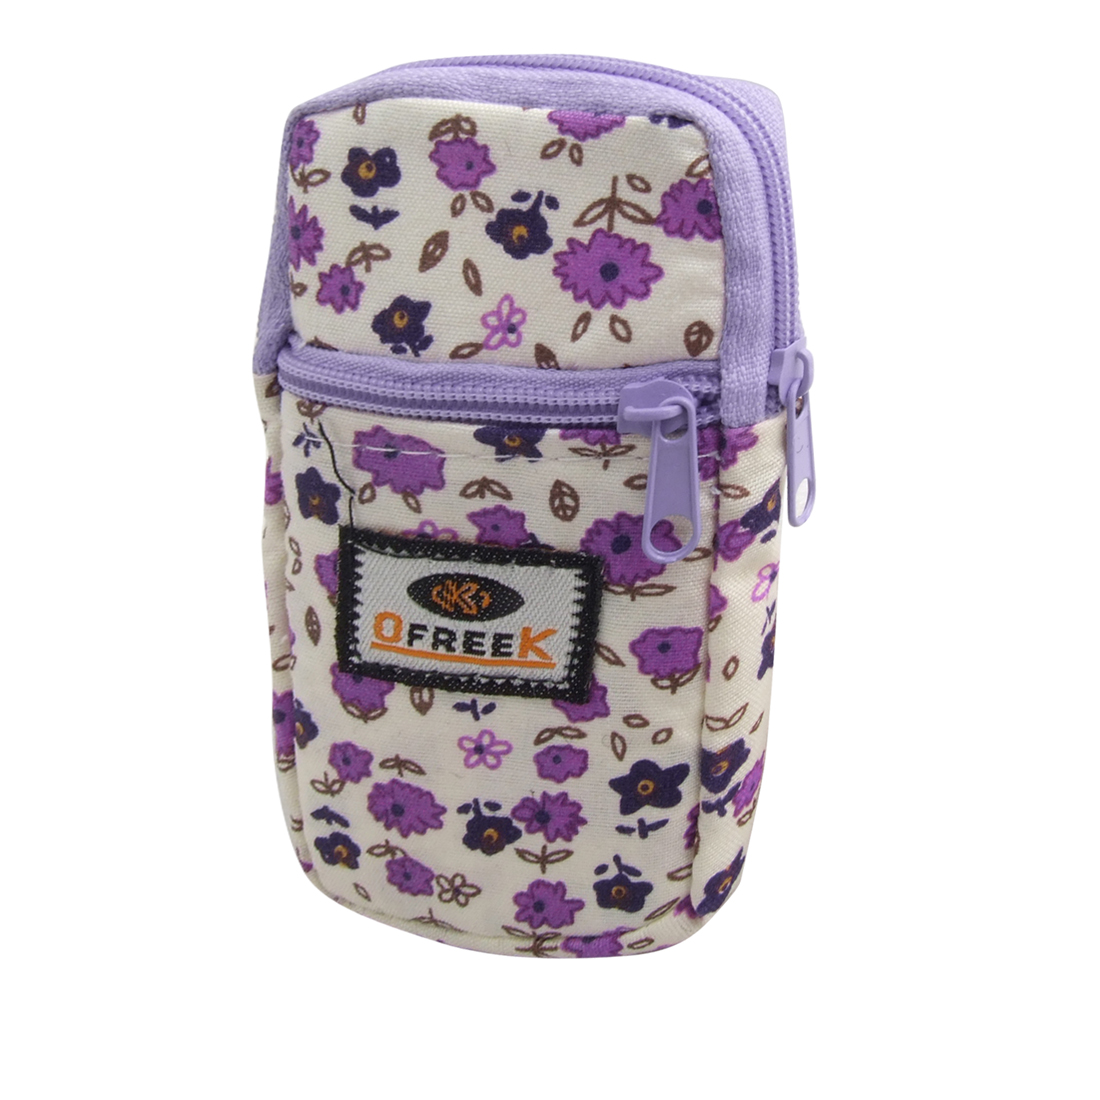 White Purple Floral Cellphone Mp3 Mp4 Holder Pouch Wrist Bag